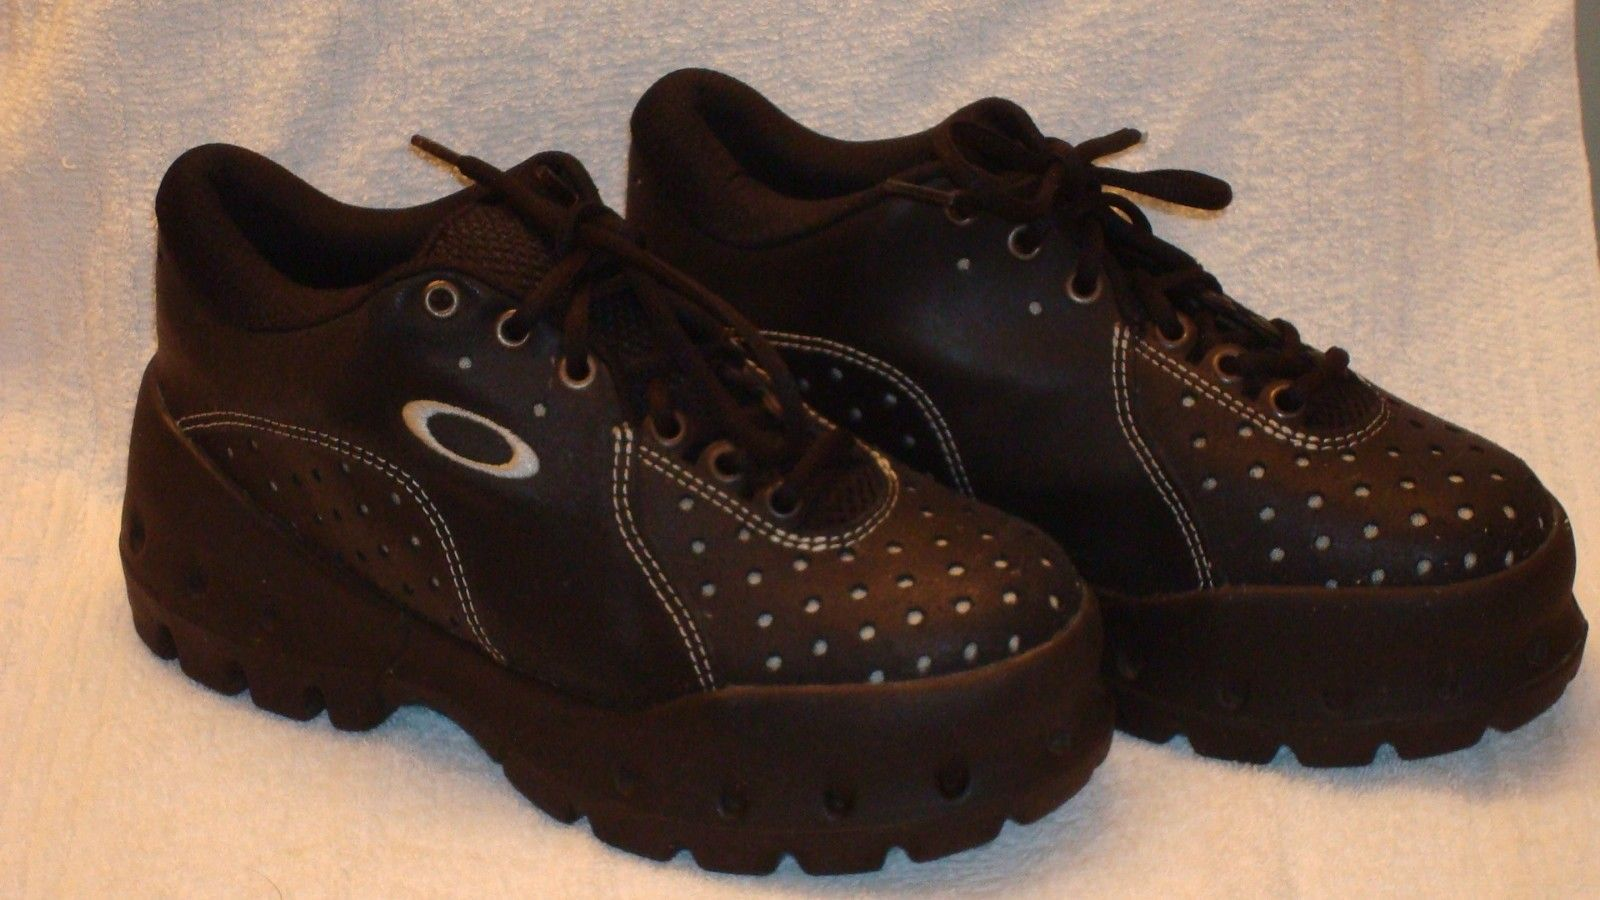 Pit Shoe Black Mens Size 7.5 Womens Size 9 - $_57.JPG